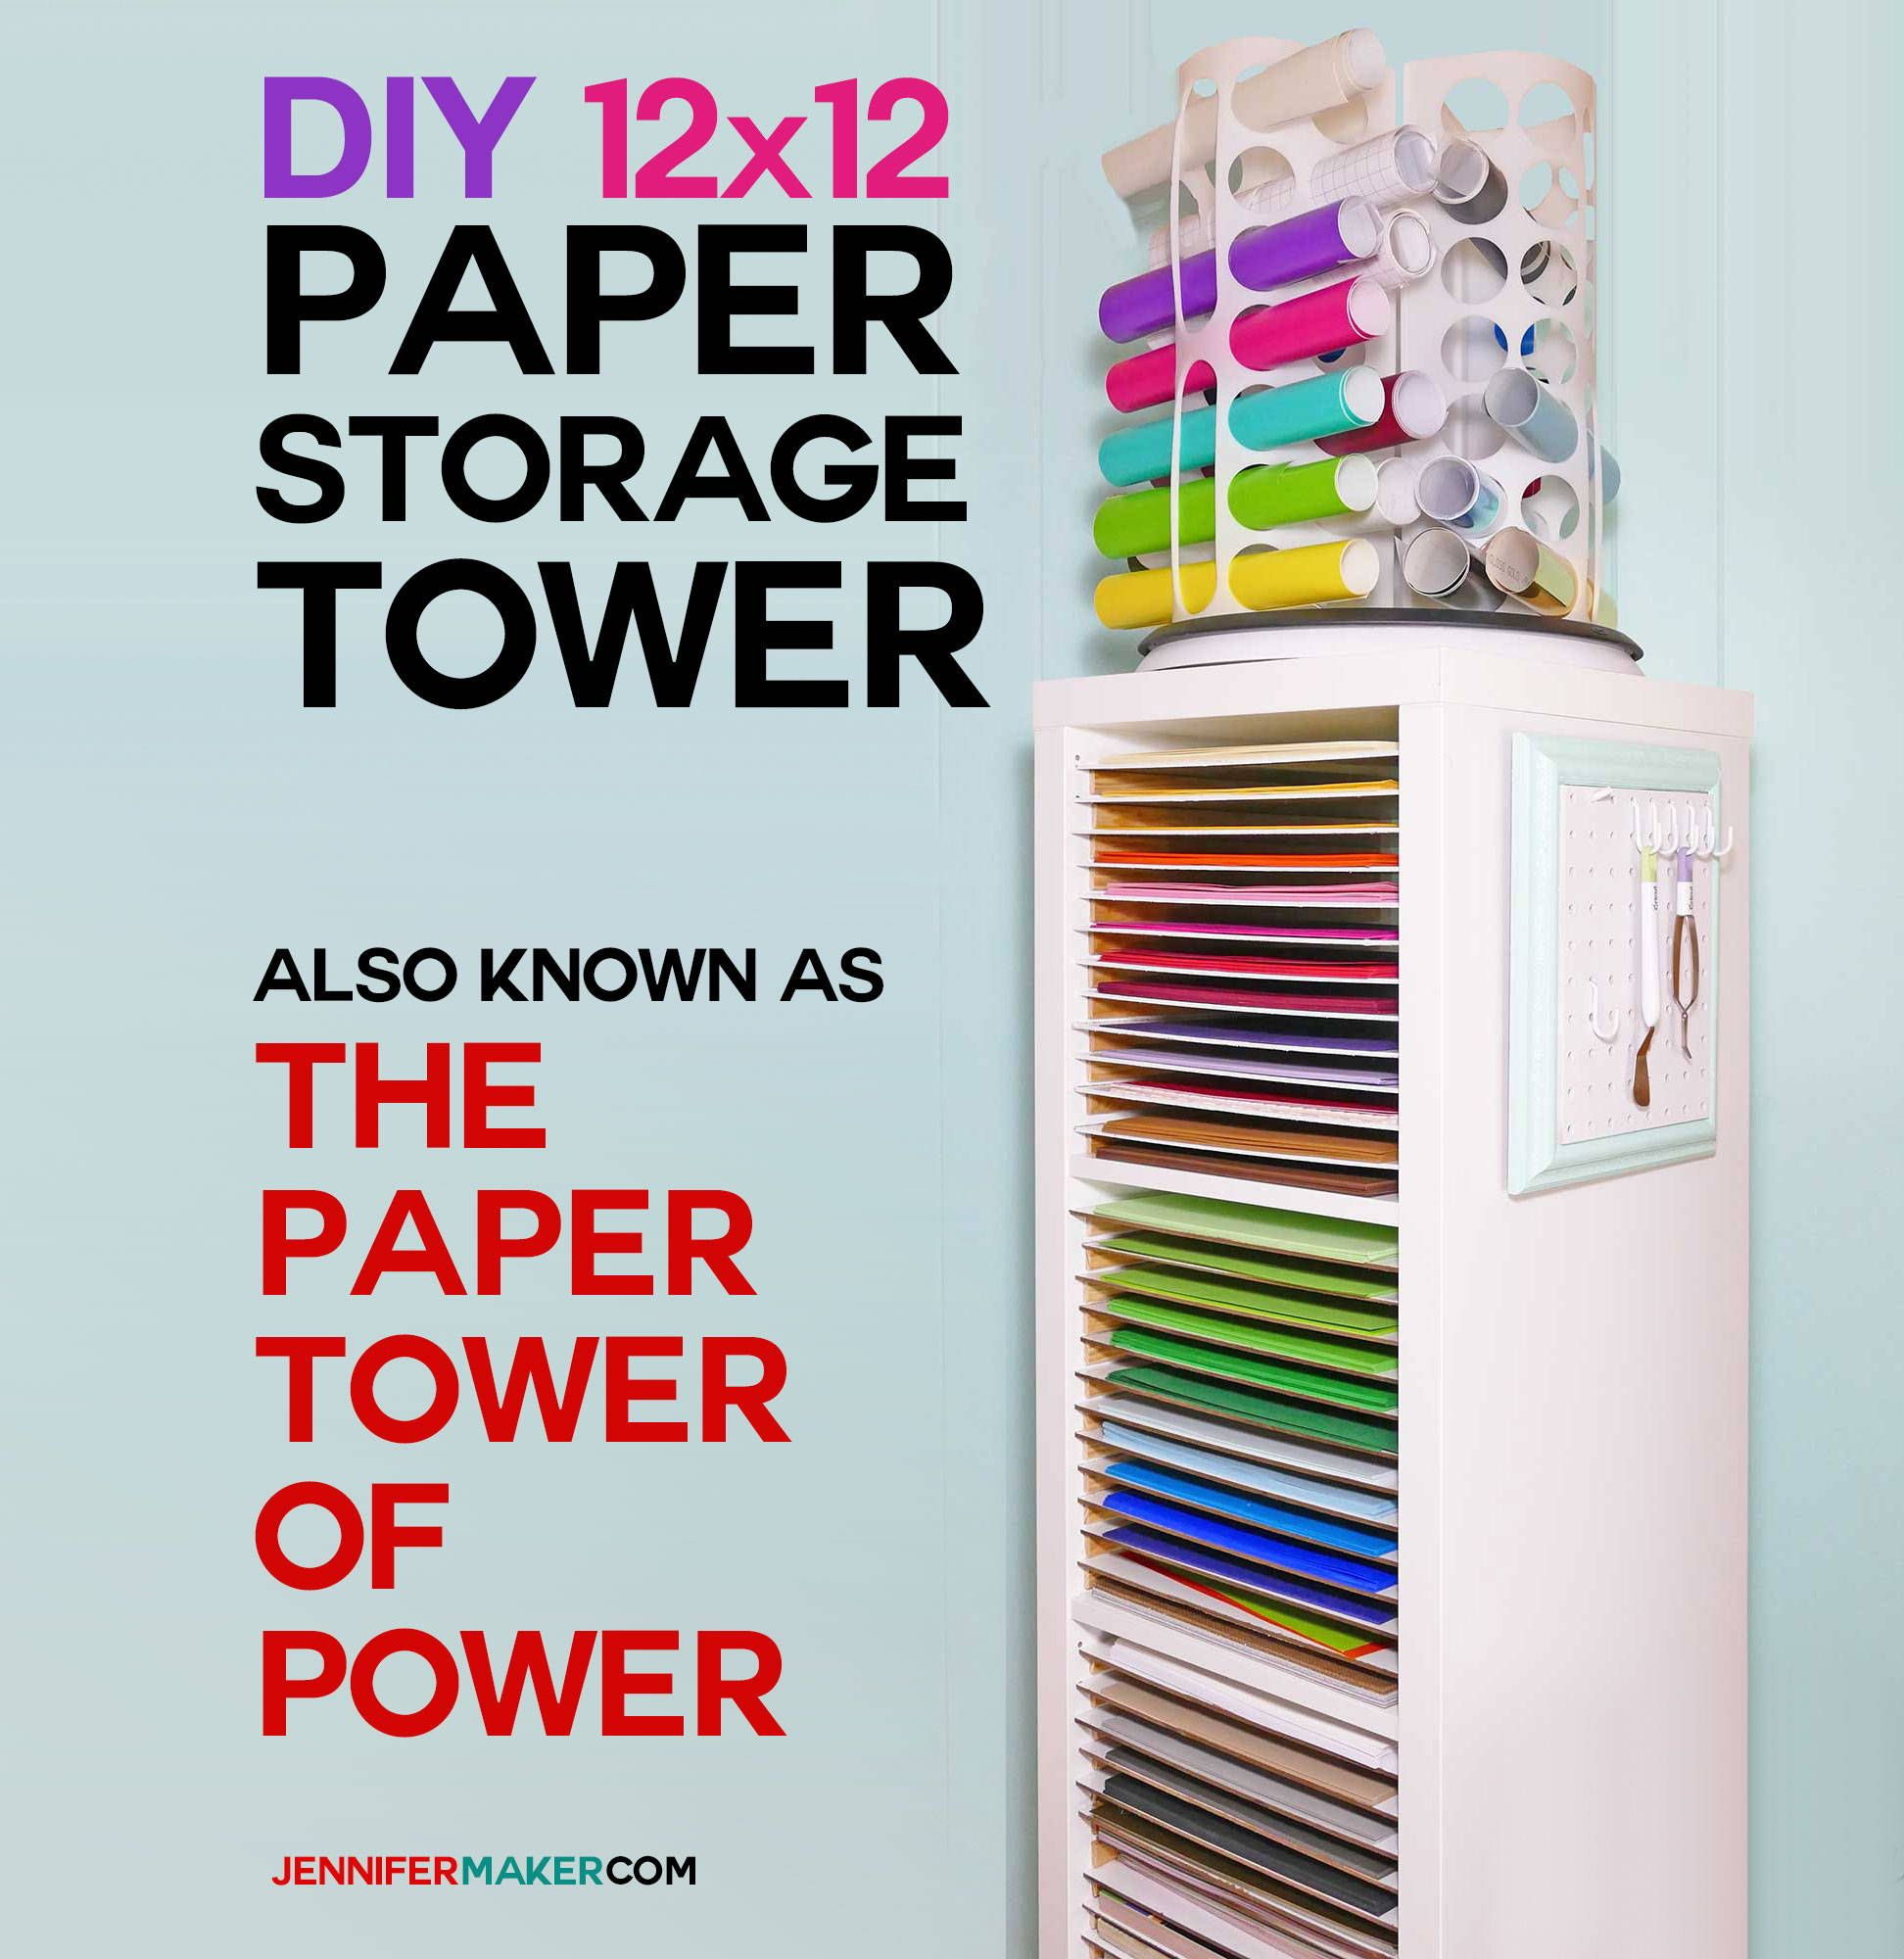 7 Craft Room Inspirations Diy Heat Transfer Vinyl Storage Ideas You Absolutely Need Scrapbook Paper Storage Craft Paper Storage Paper Storage